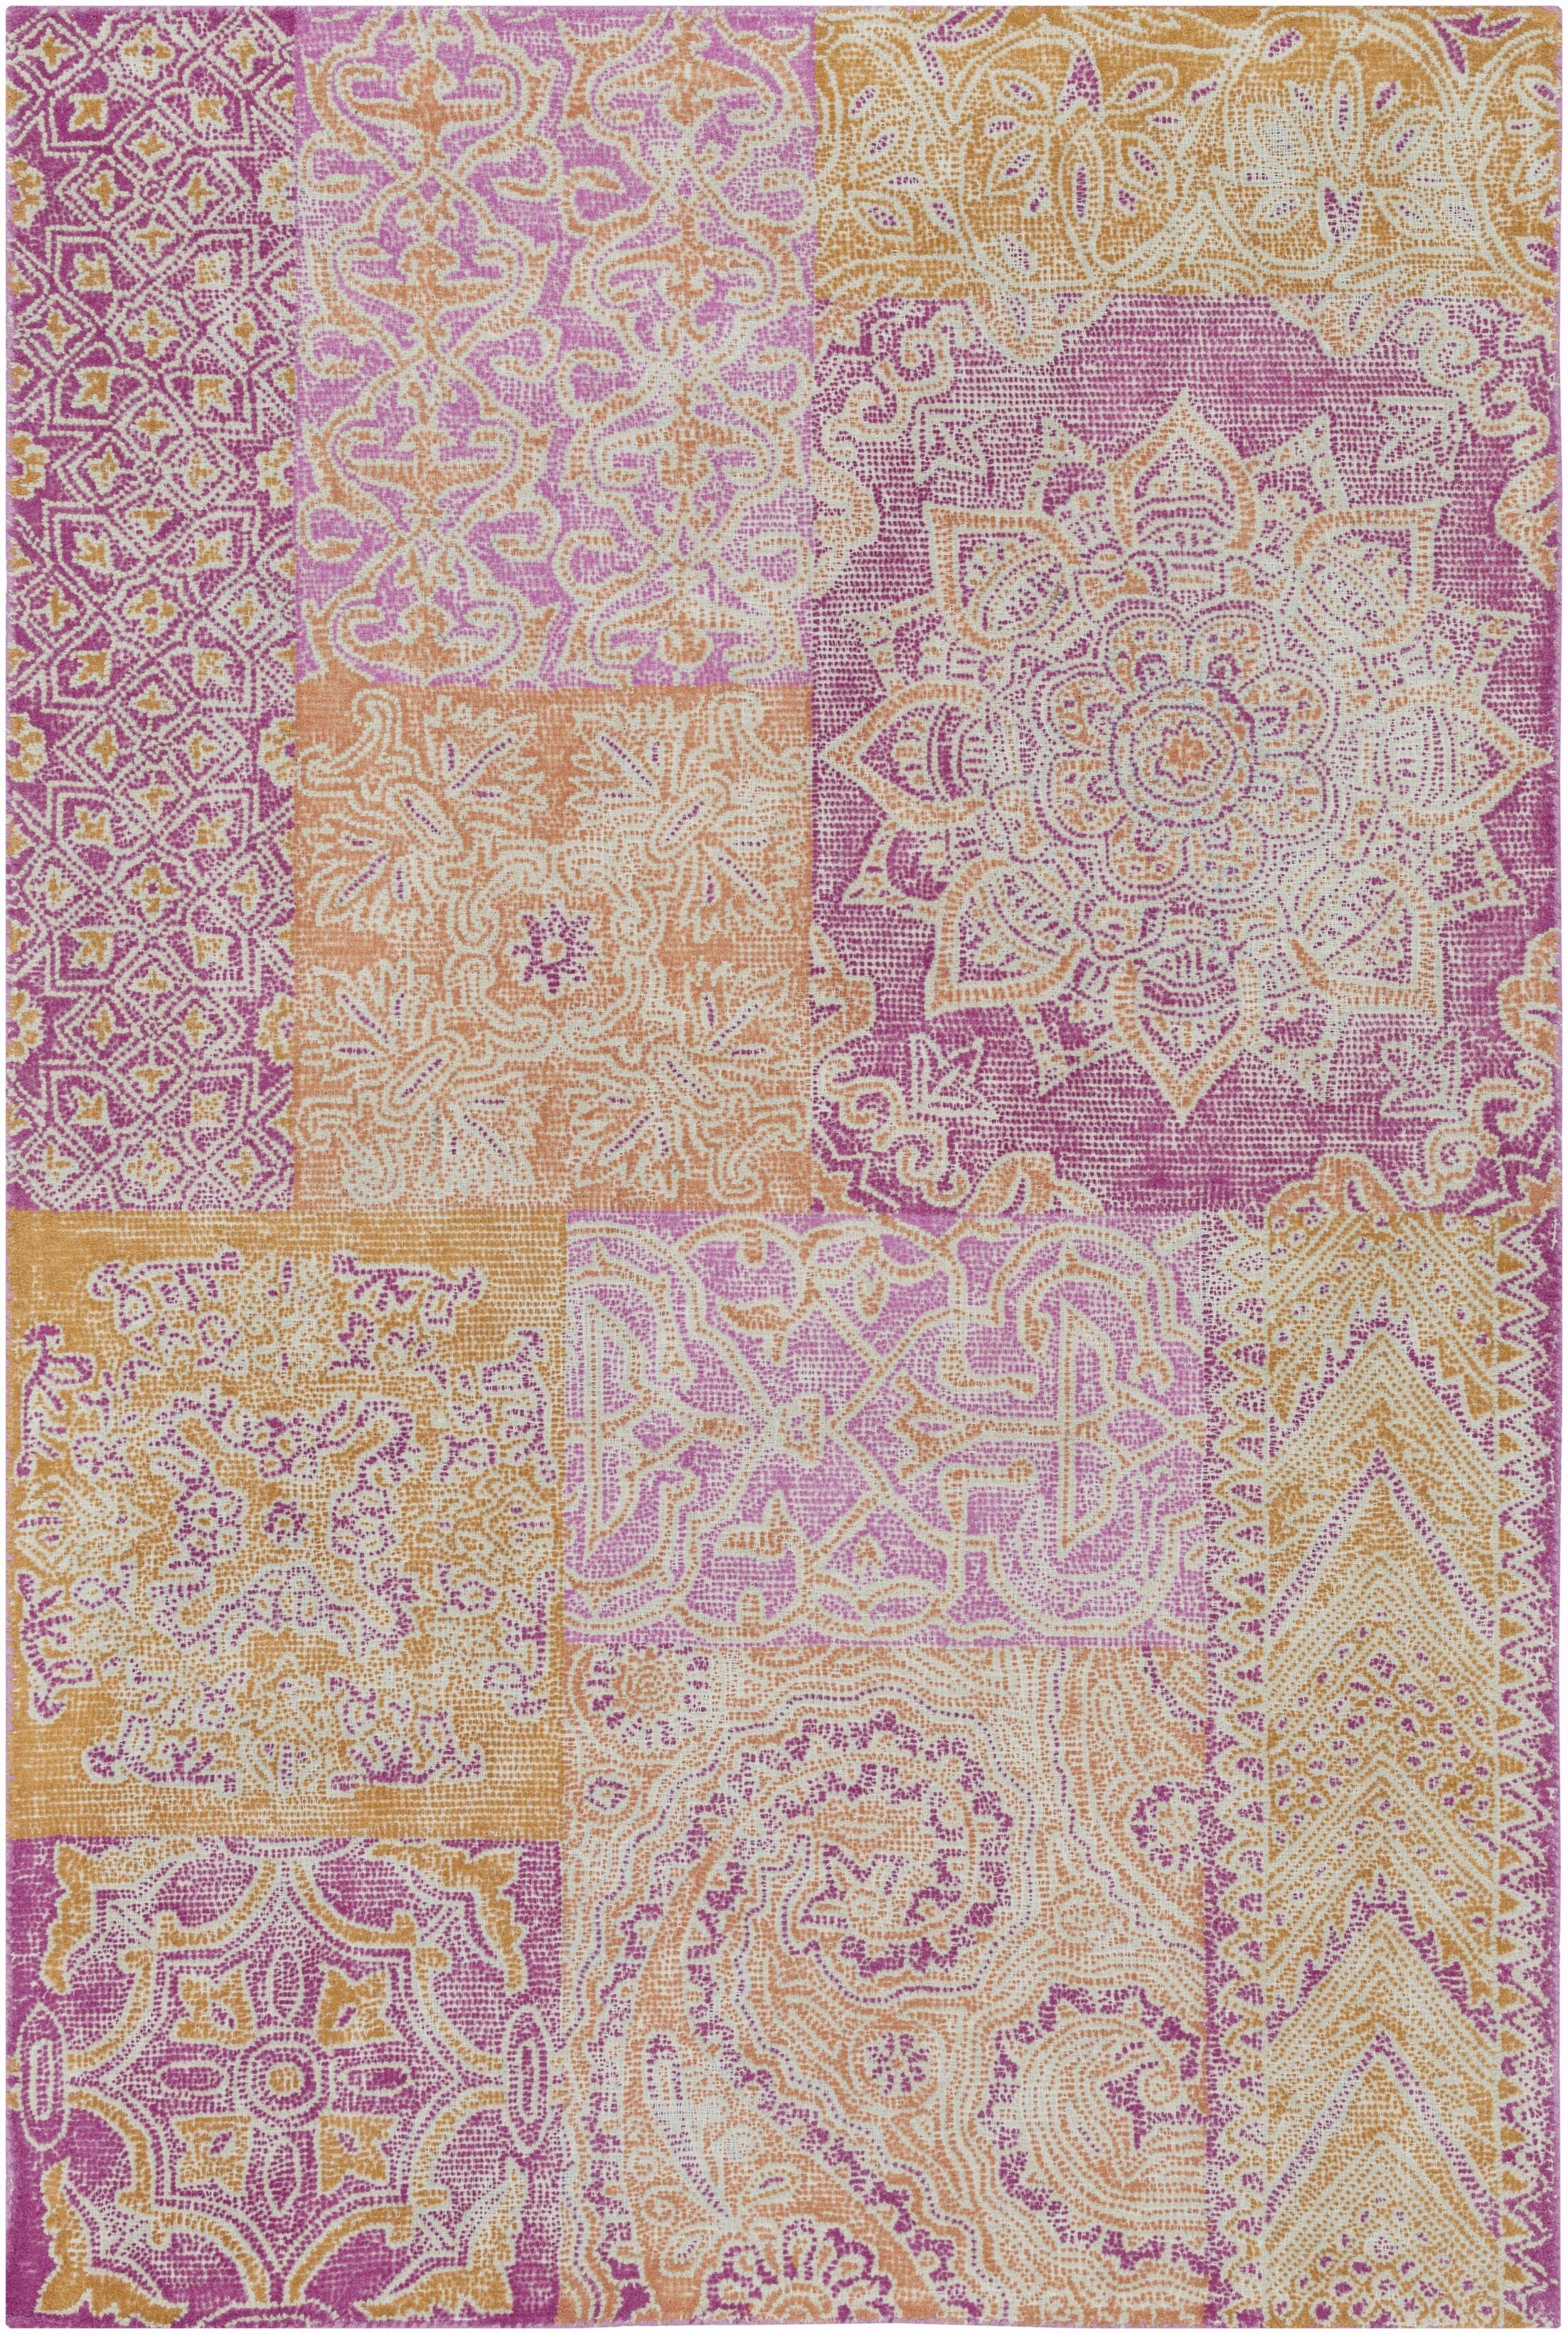 Knowland Hand-Tufted Bright Pink/Peach Area Rug Rug Size: Rectangle 5' x 7'6